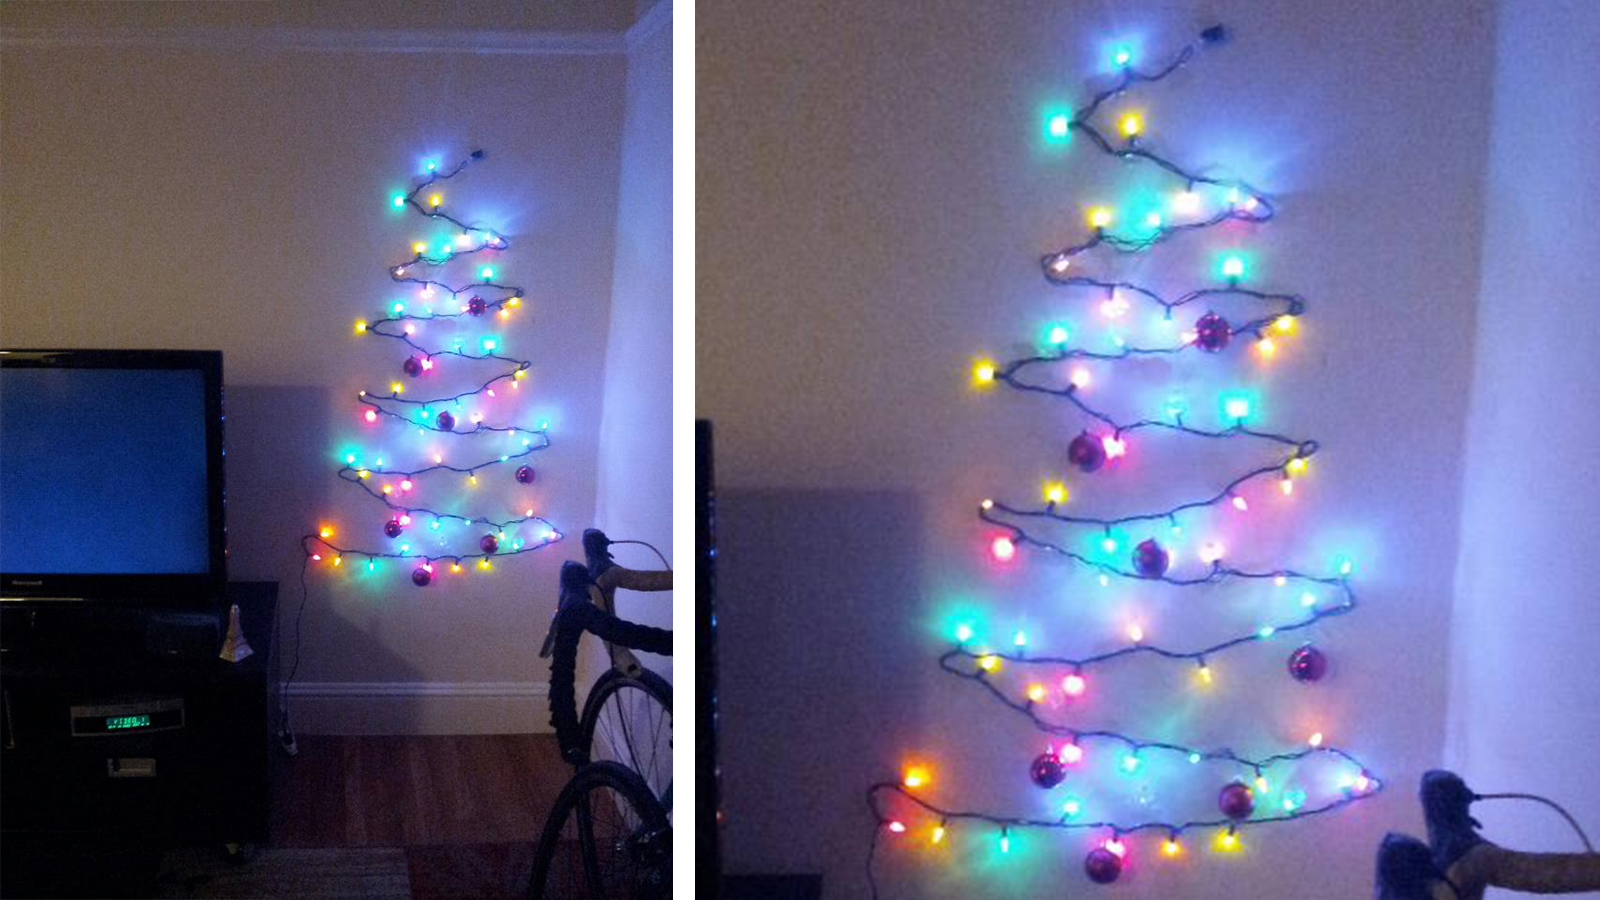 This Clever Christmas Tree Is The Answer To Your Cramped Holiday Woes